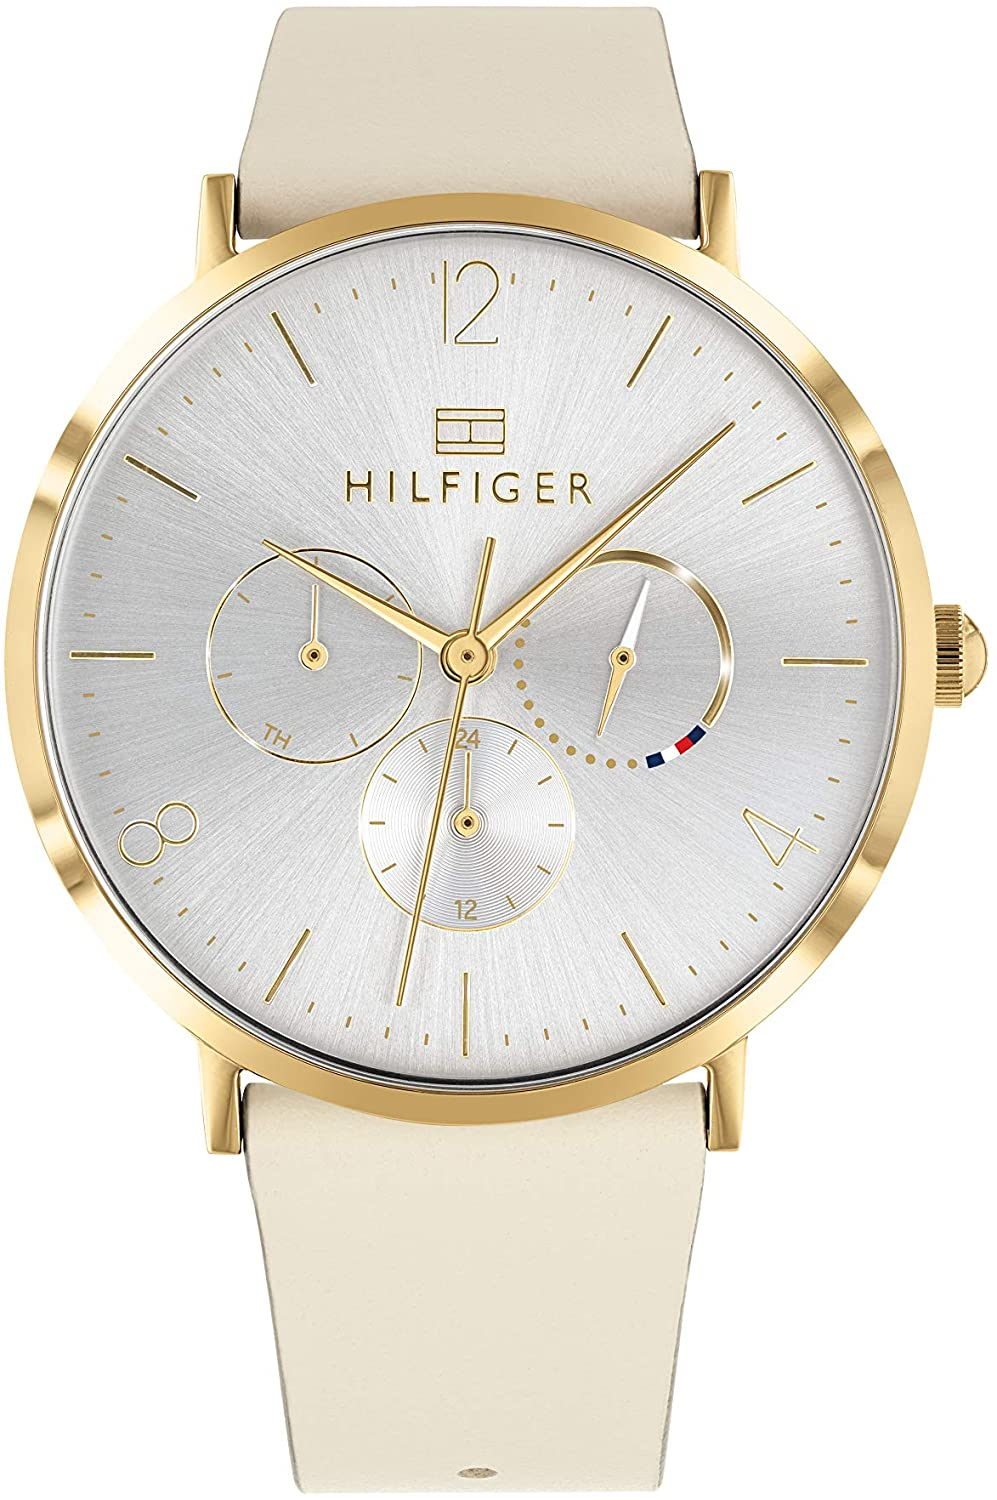 Tommy Hilfiger Women's Stainless Steel Quartz Watch with Leather Strap, Beige, 20 (Model: 1782035)